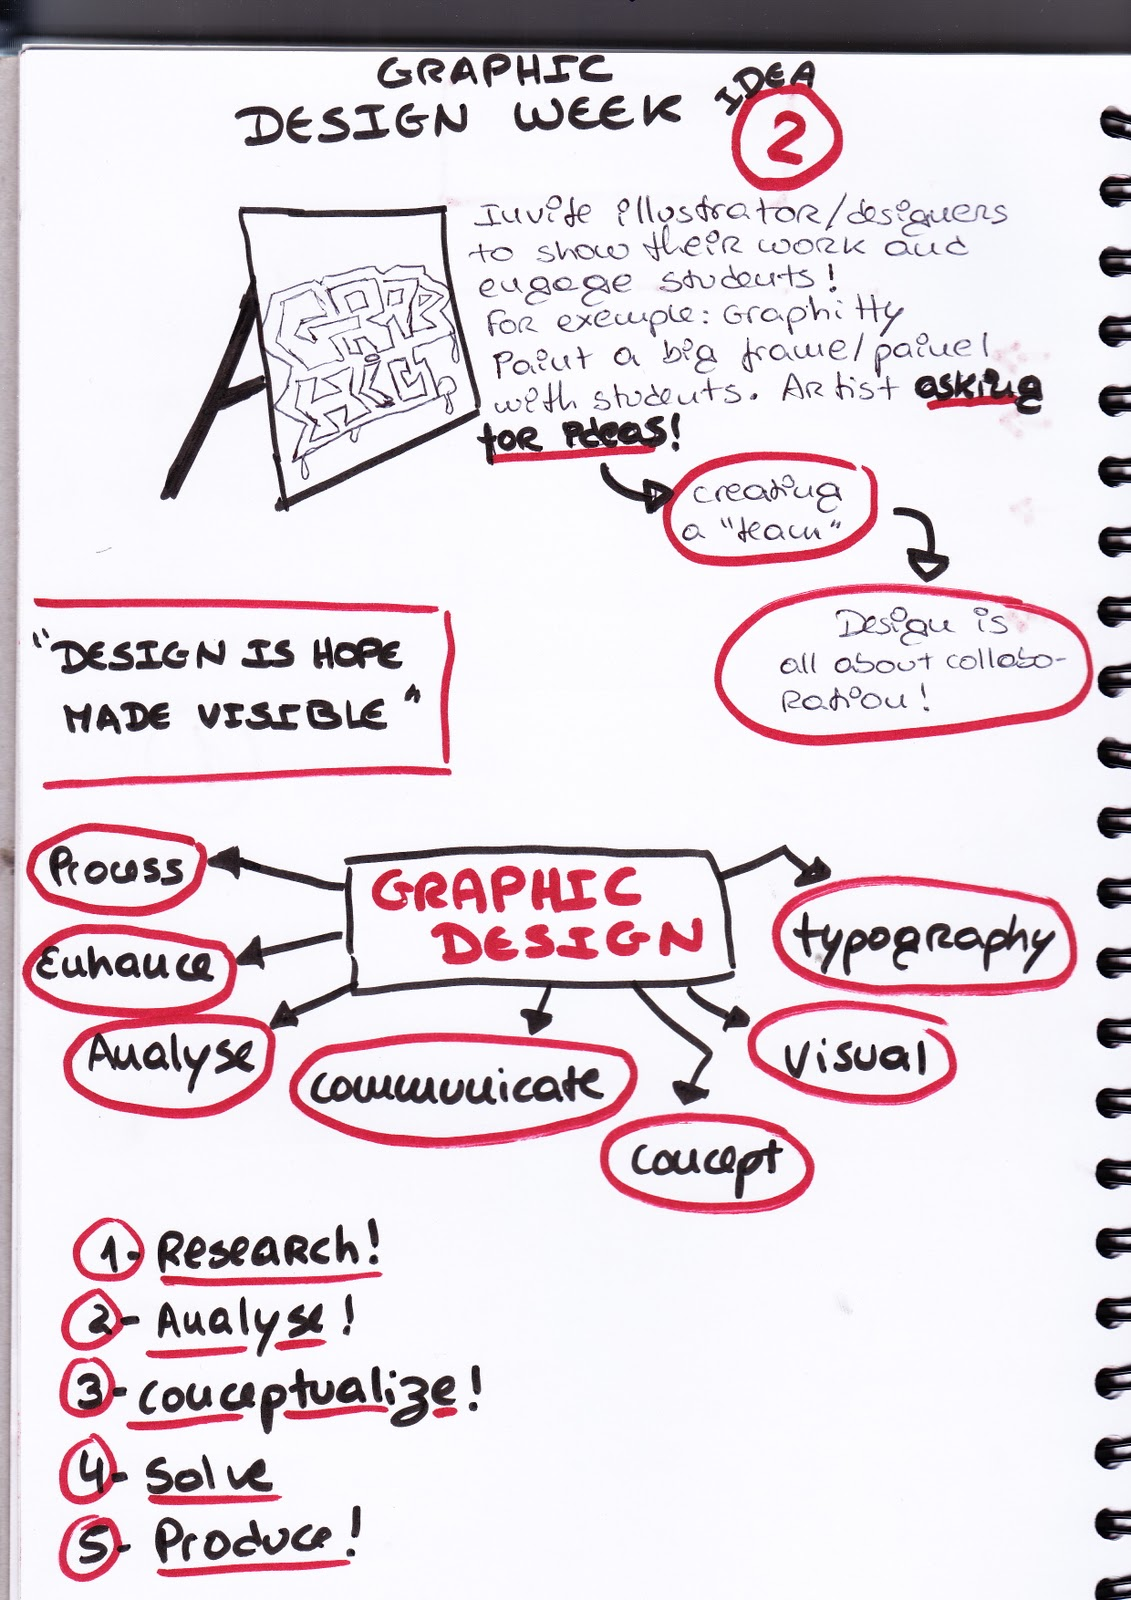 Mariana Design Research Methods Rsa Project Ideas